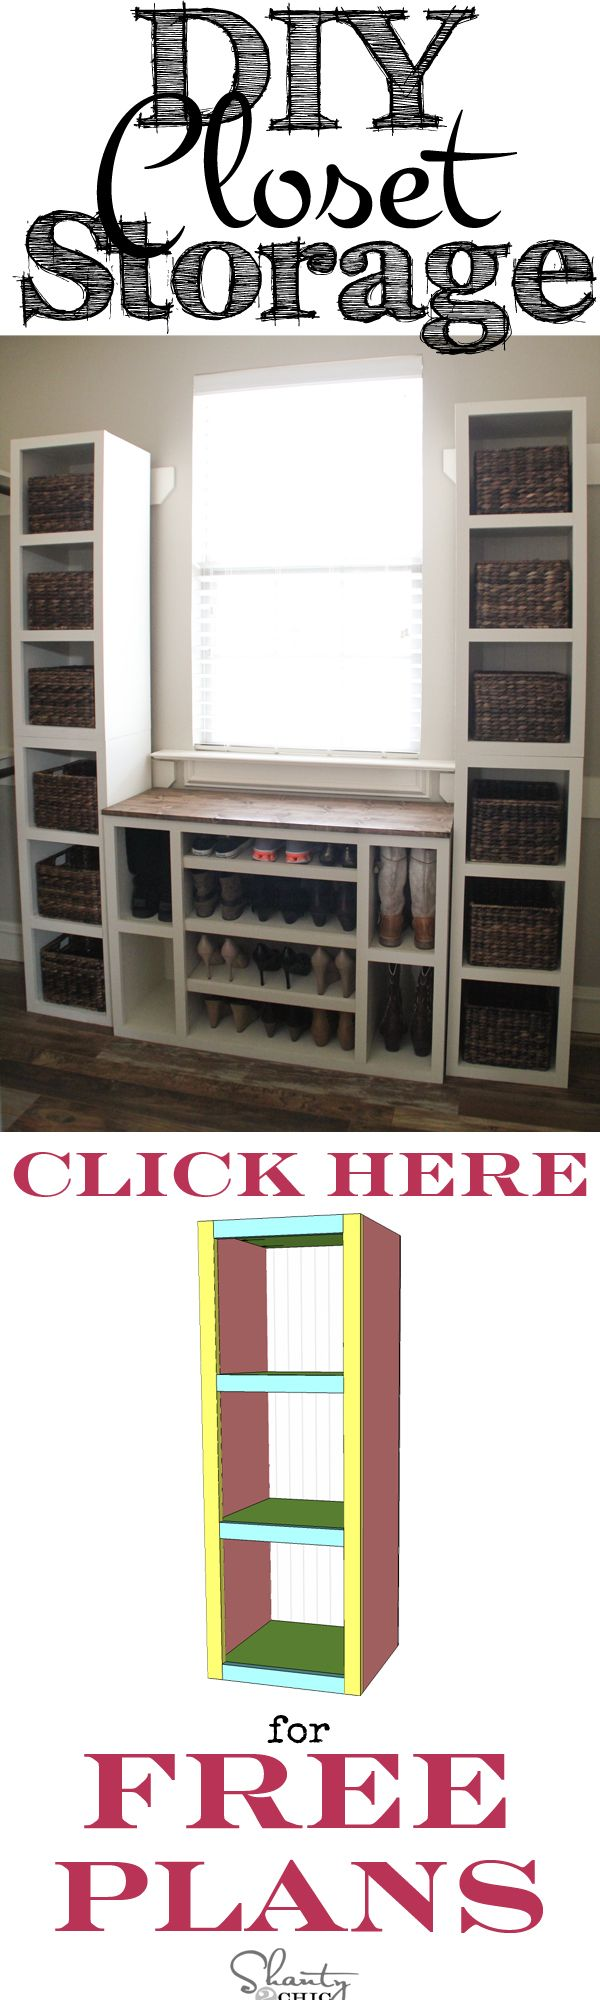 Diy Closet Storage Towers Diy Closet Storage Diy Storage Shelves Bedroom Diy